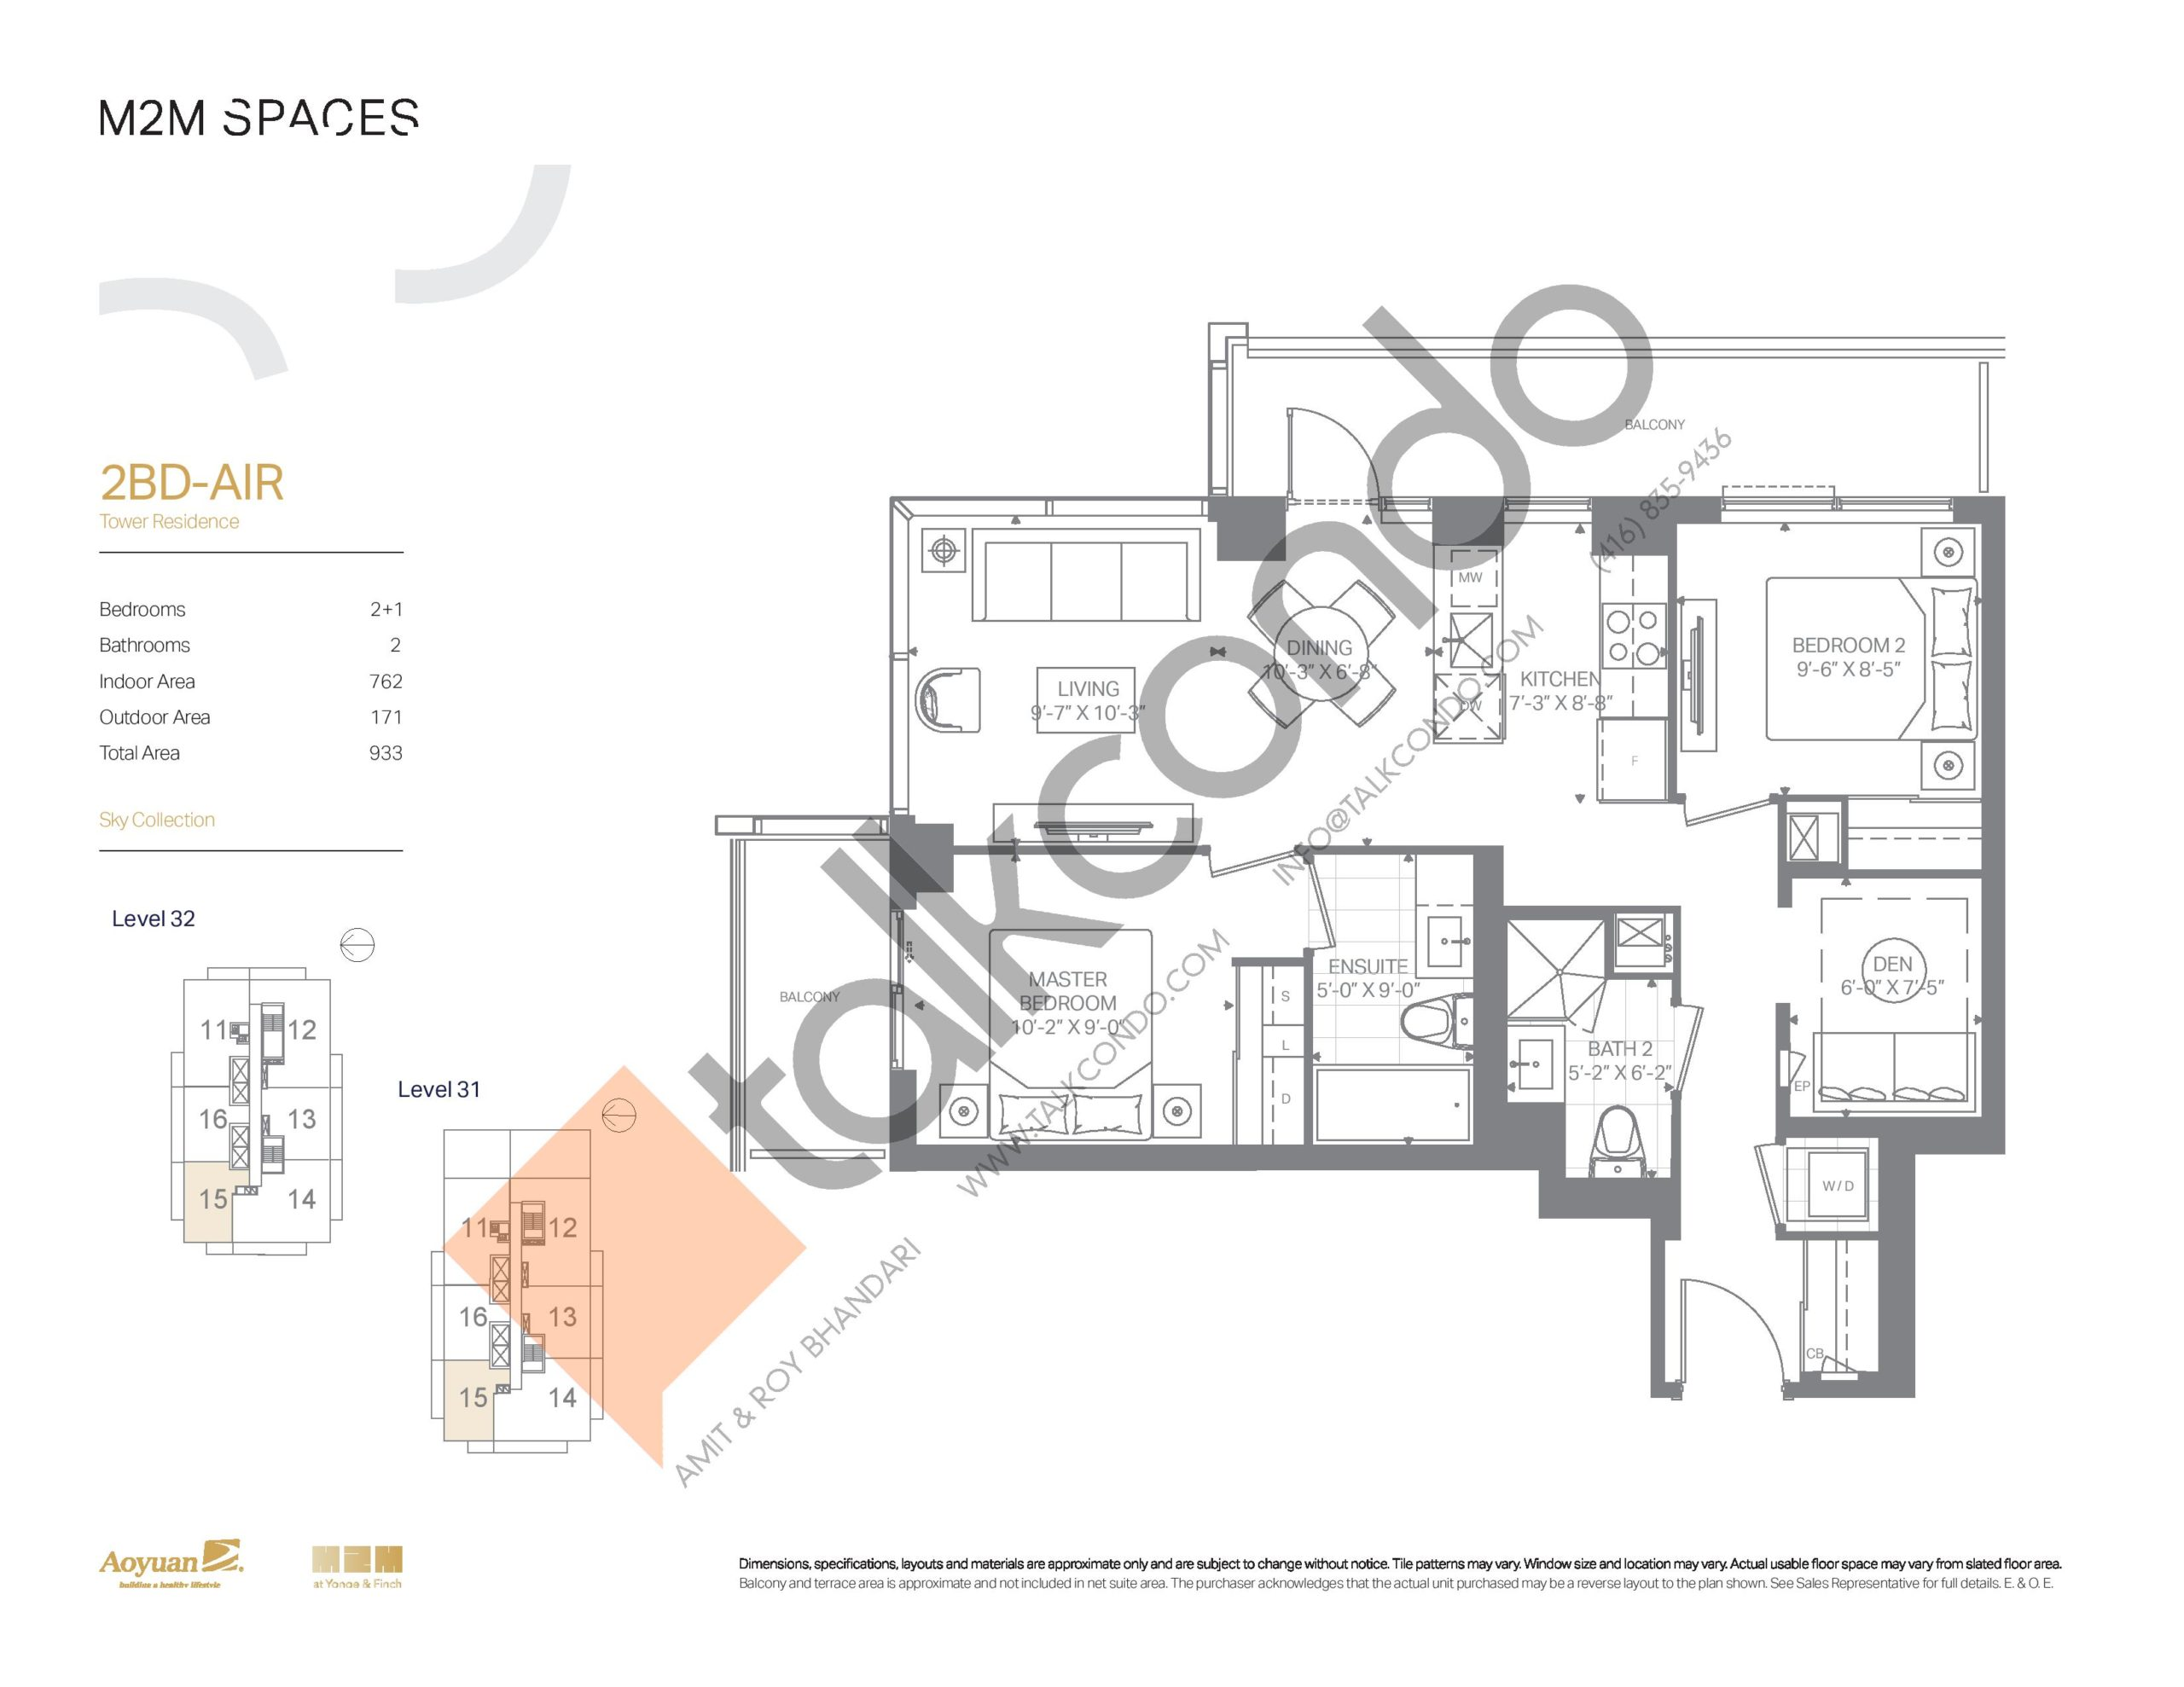 2BD-AIR (Sky Collection) Floor Plan at M2M Spaces Condos - 762 sq.ft